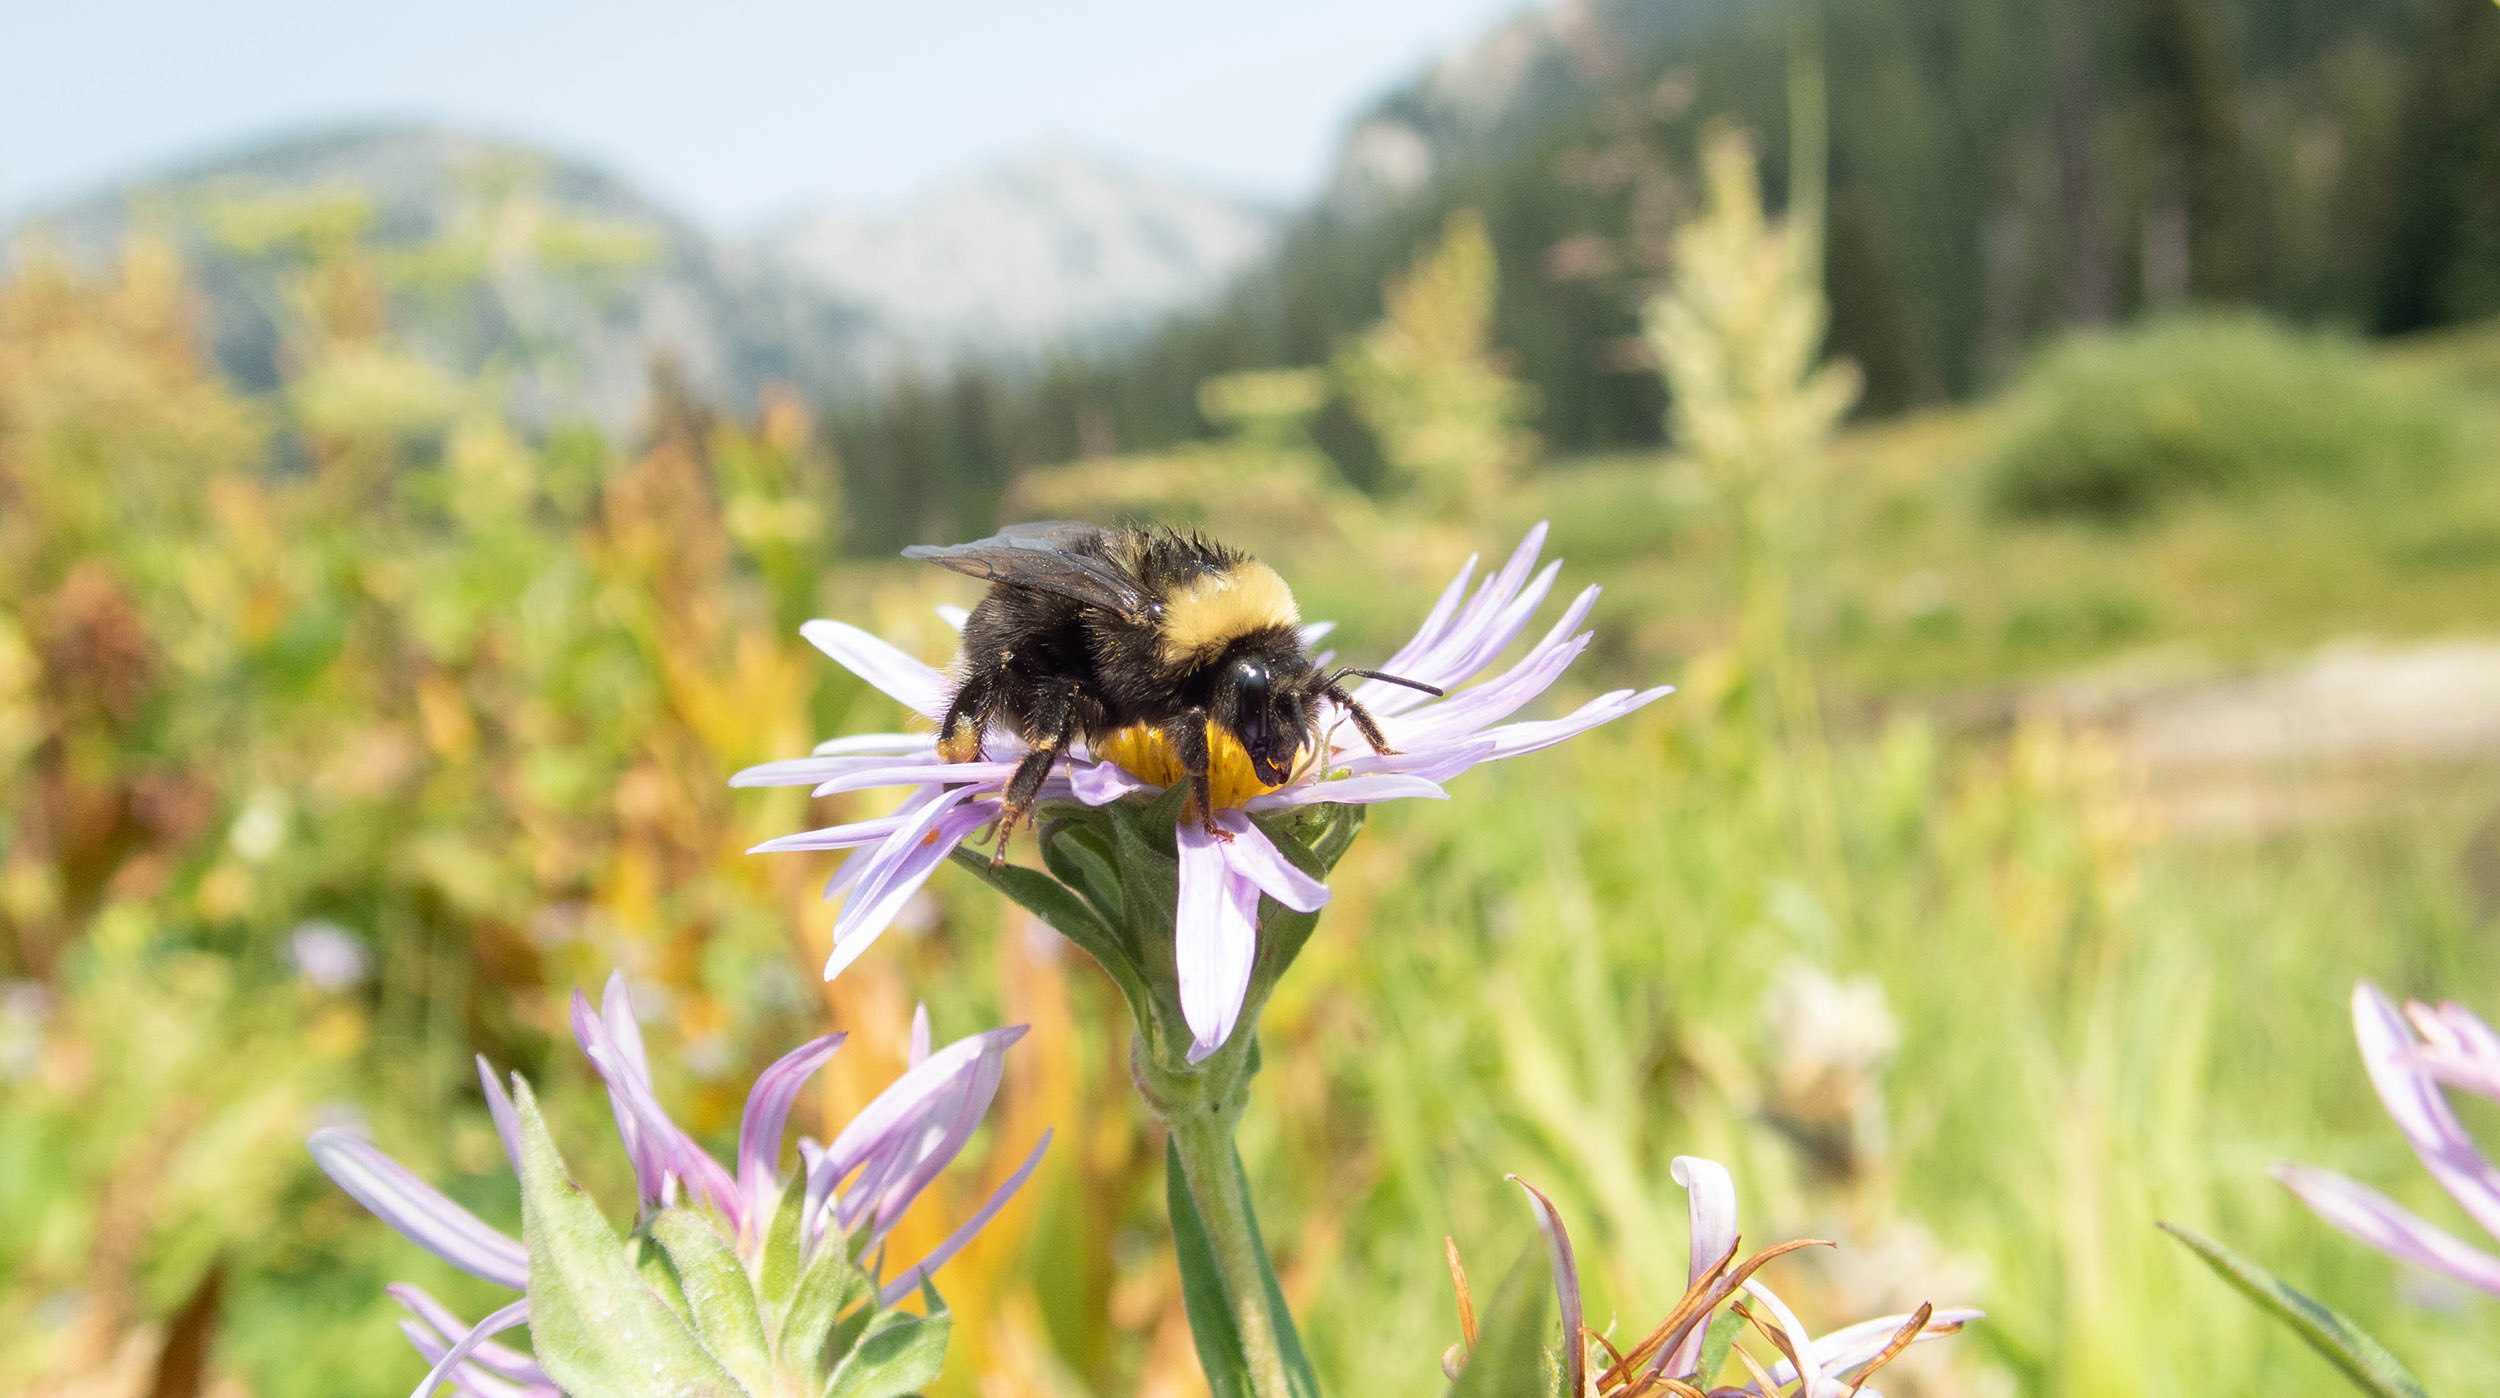 A bumble bee that is black with yellow band across it's shoulders drink nectar from a purple and yellow colored aster flower